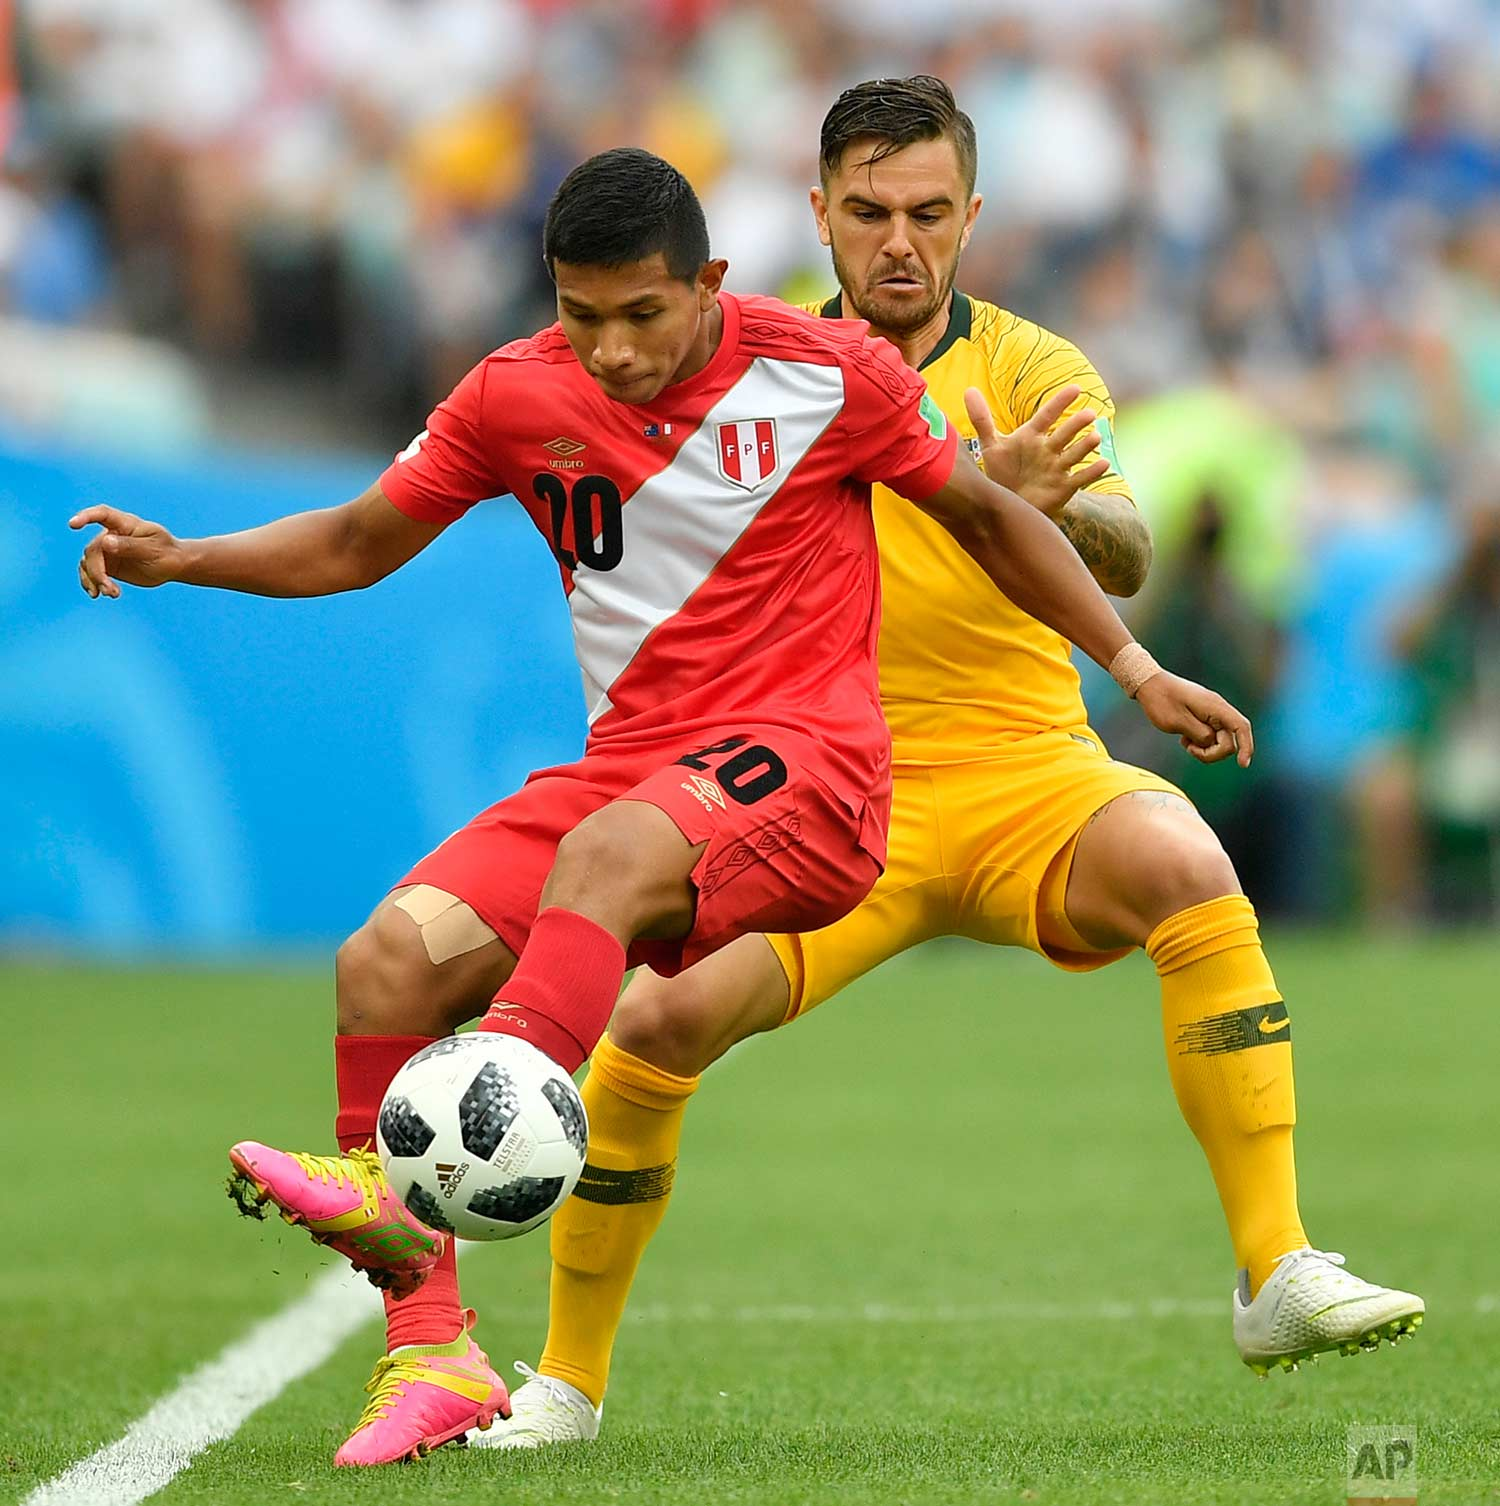 Peru's Edison Flores, left, and Australia's Joshua Risdon challenge for the ball during the group C match between Australia and Peru, at the 2018 soccer World Cup in the Fisht Stadium in Sochi, Russia, Tuesday, June 26, 2018. (AP Photo/Martin Meissner)